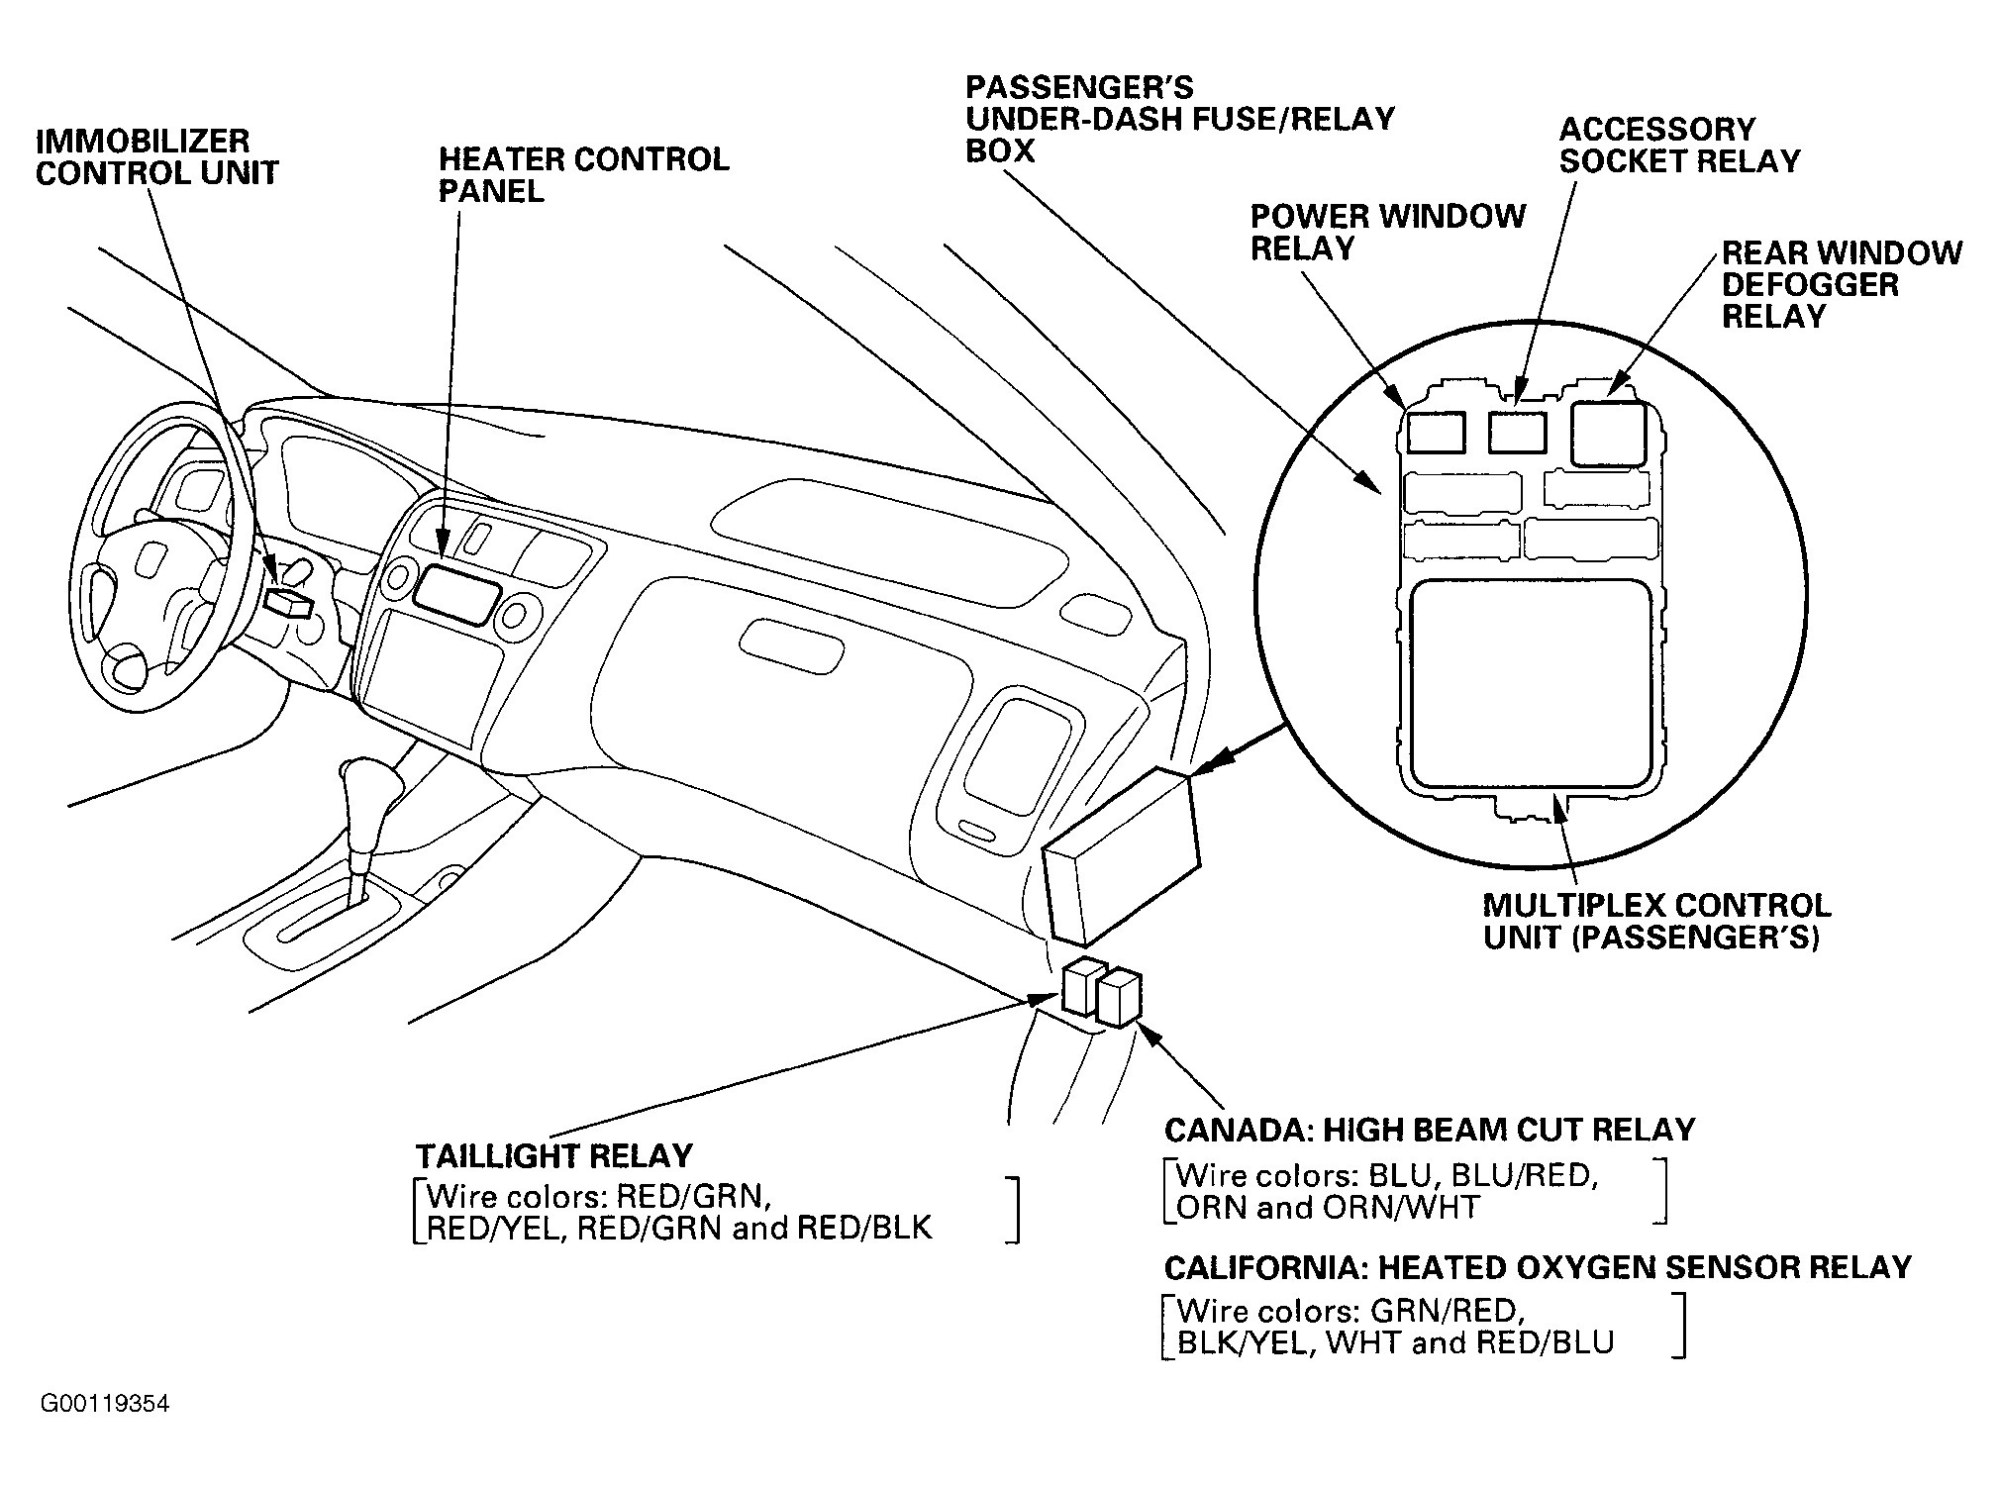 hight resolution of 04 acura tsx fuse box wiring diagramwrg 3813 04 acura tl fuse diagramfix p1167 in